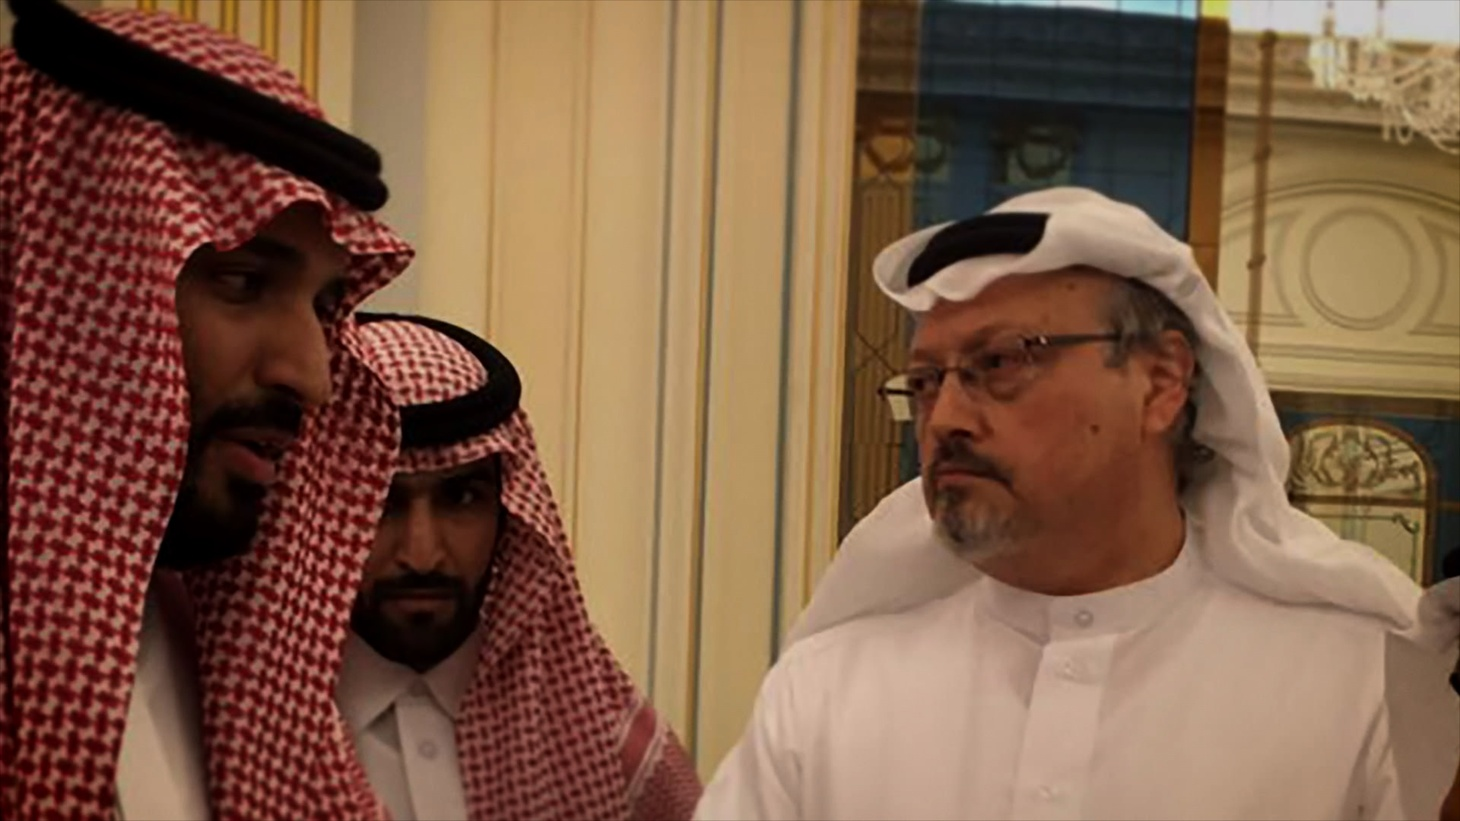 """The new documentary """"The Dissident"""" investigates the murder of journalist Jamal Khashoggi by the regime of Saudi Prince Mohammed bin Salman. Photo courtesy of Briarcliff Entertainment."""